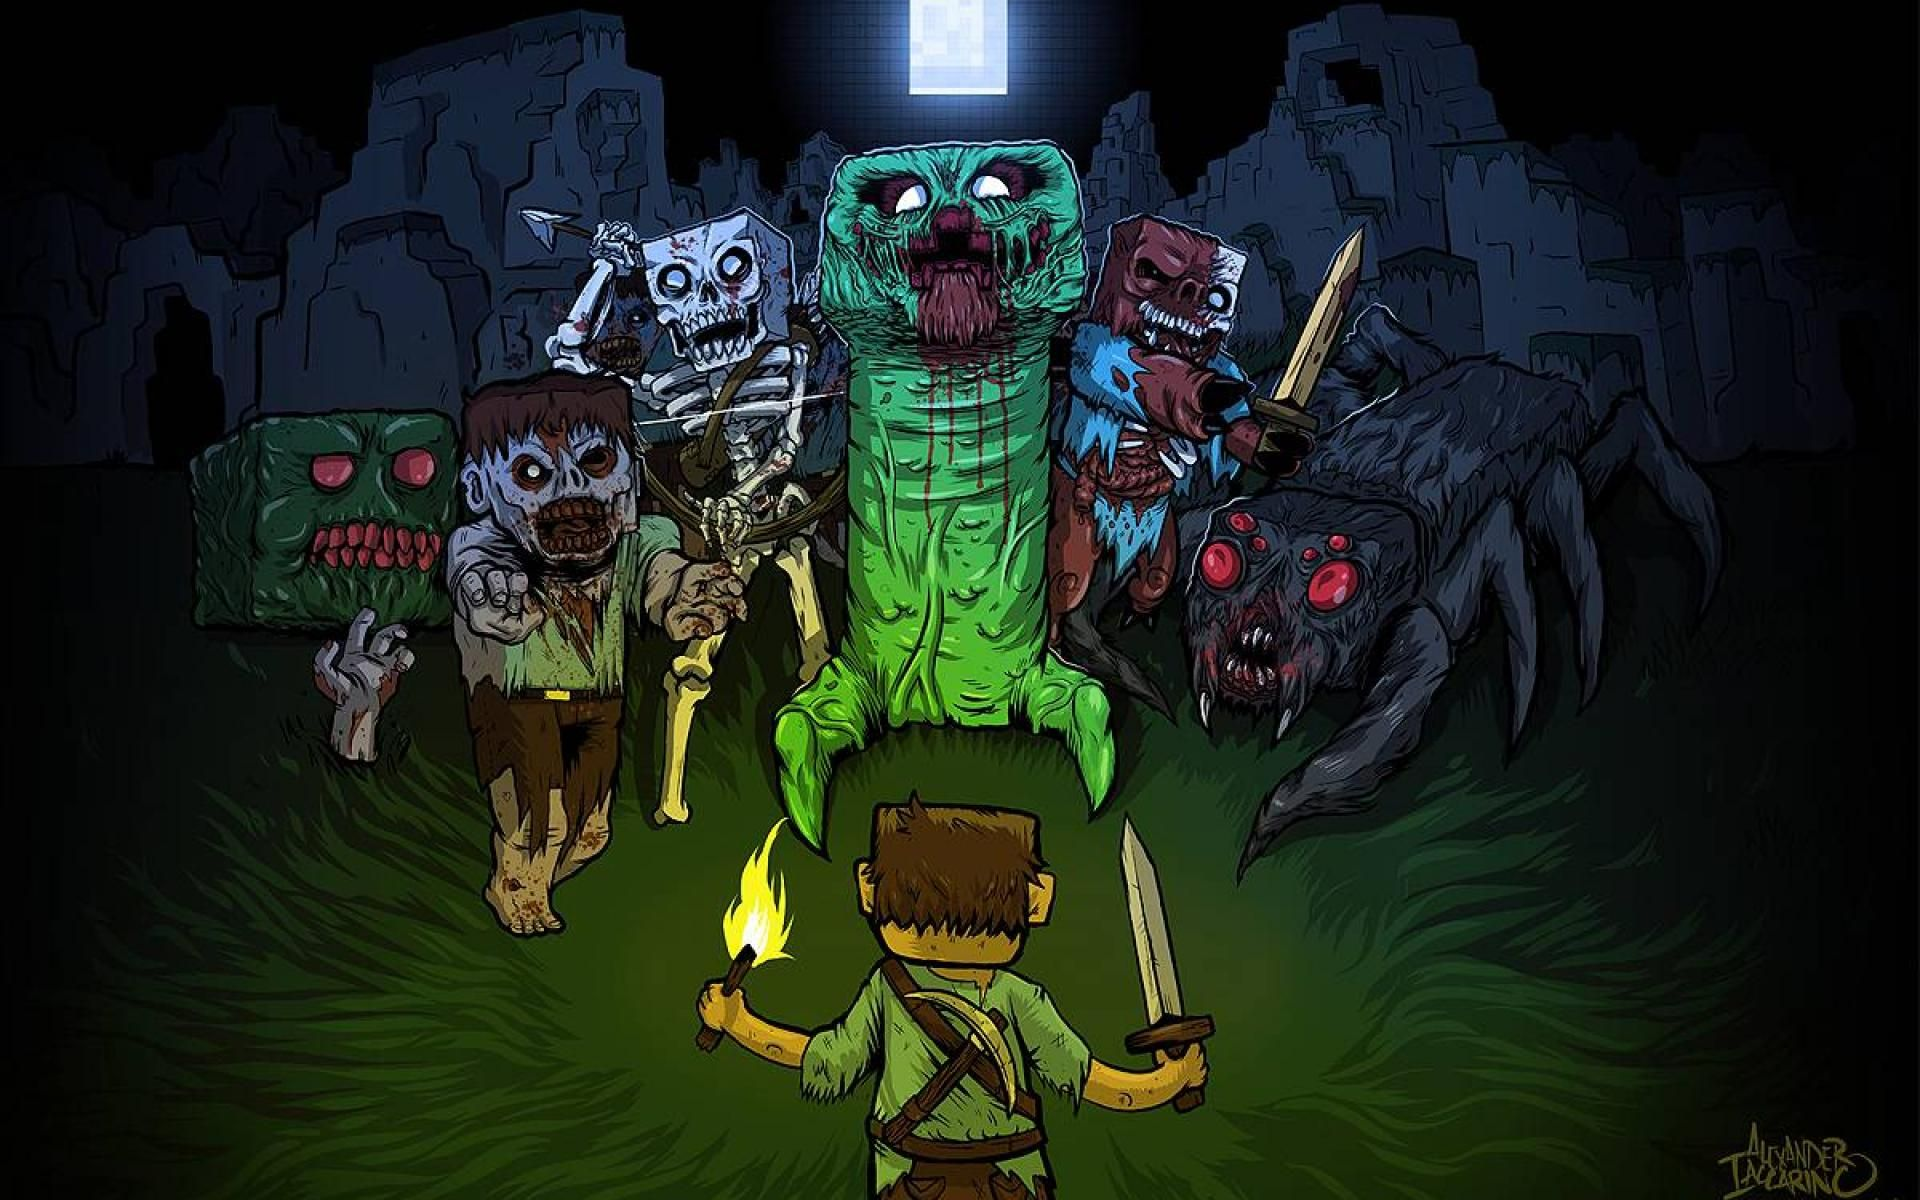 Cool Minecraft Backgrounds Wallpaper 1920x1200 Wallpapers 28